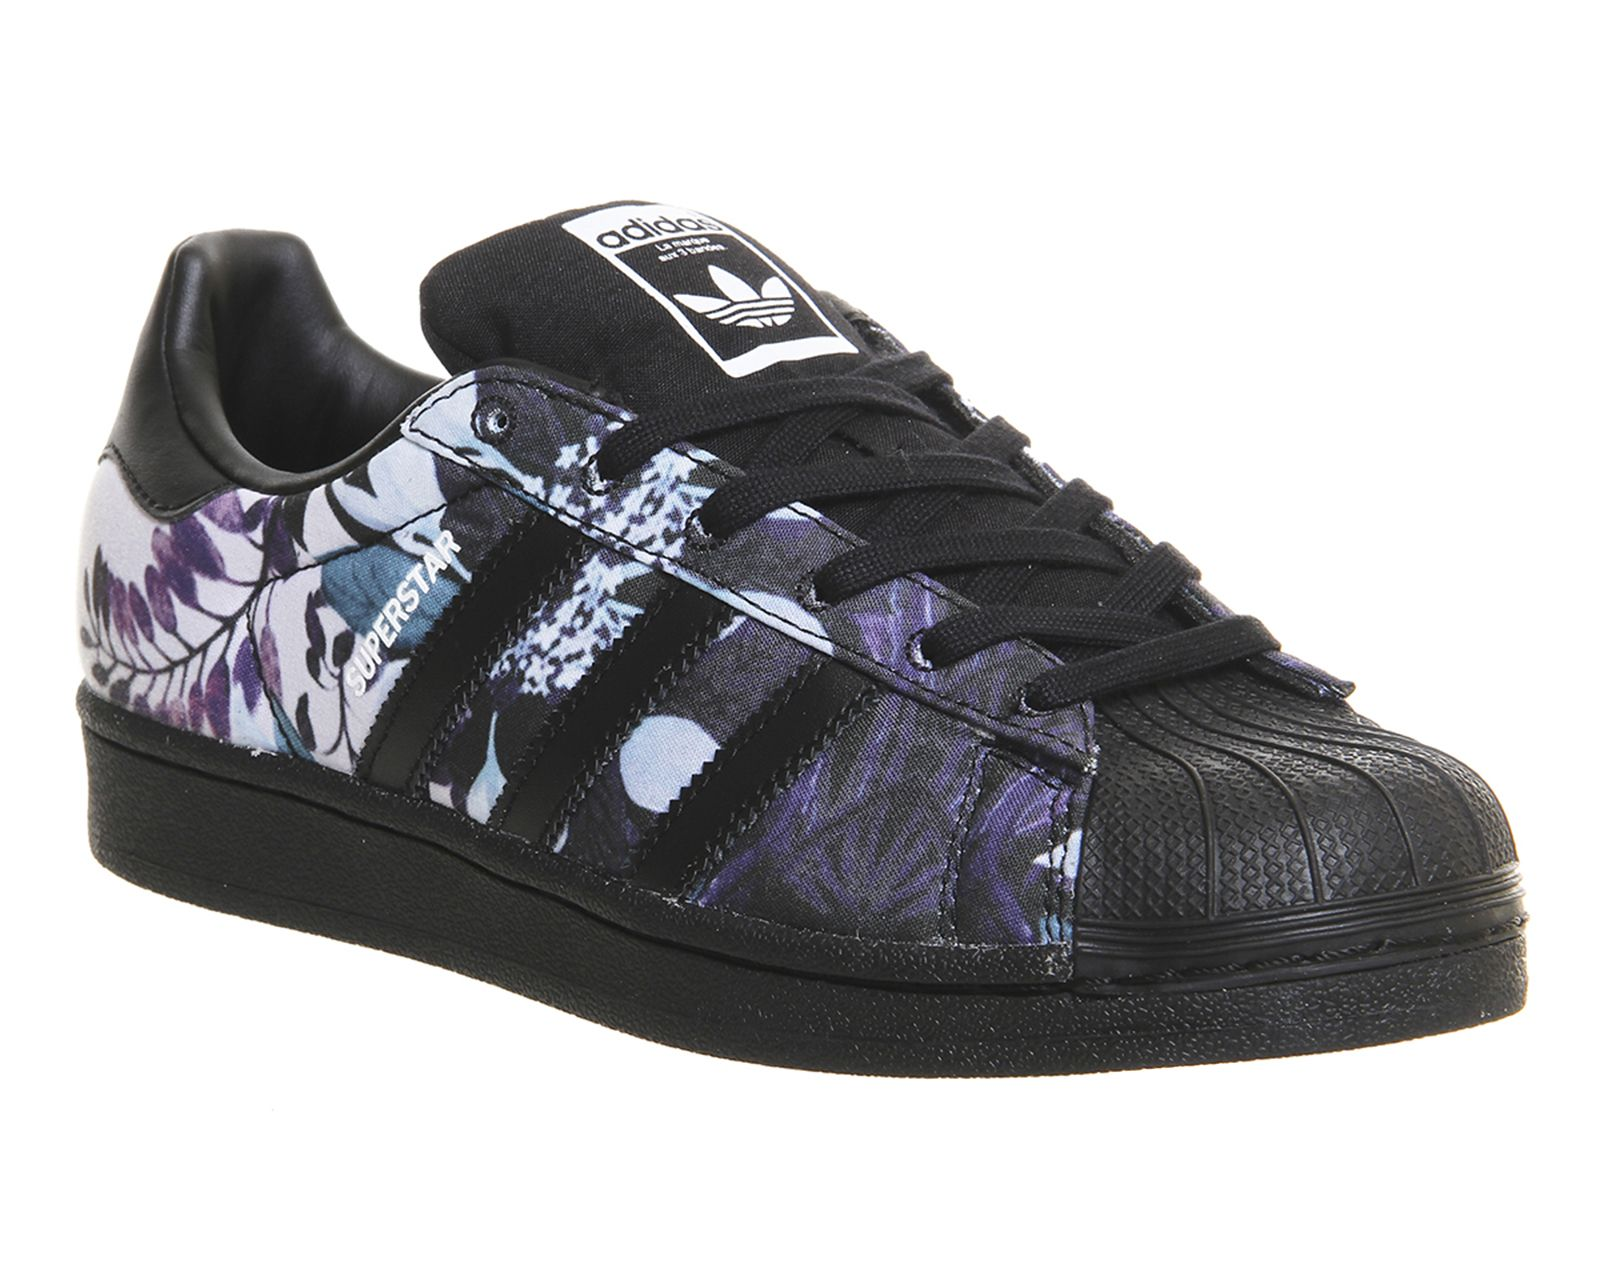 Adidas Superstar 1 Core Black Floral Print W - Unisex Sports